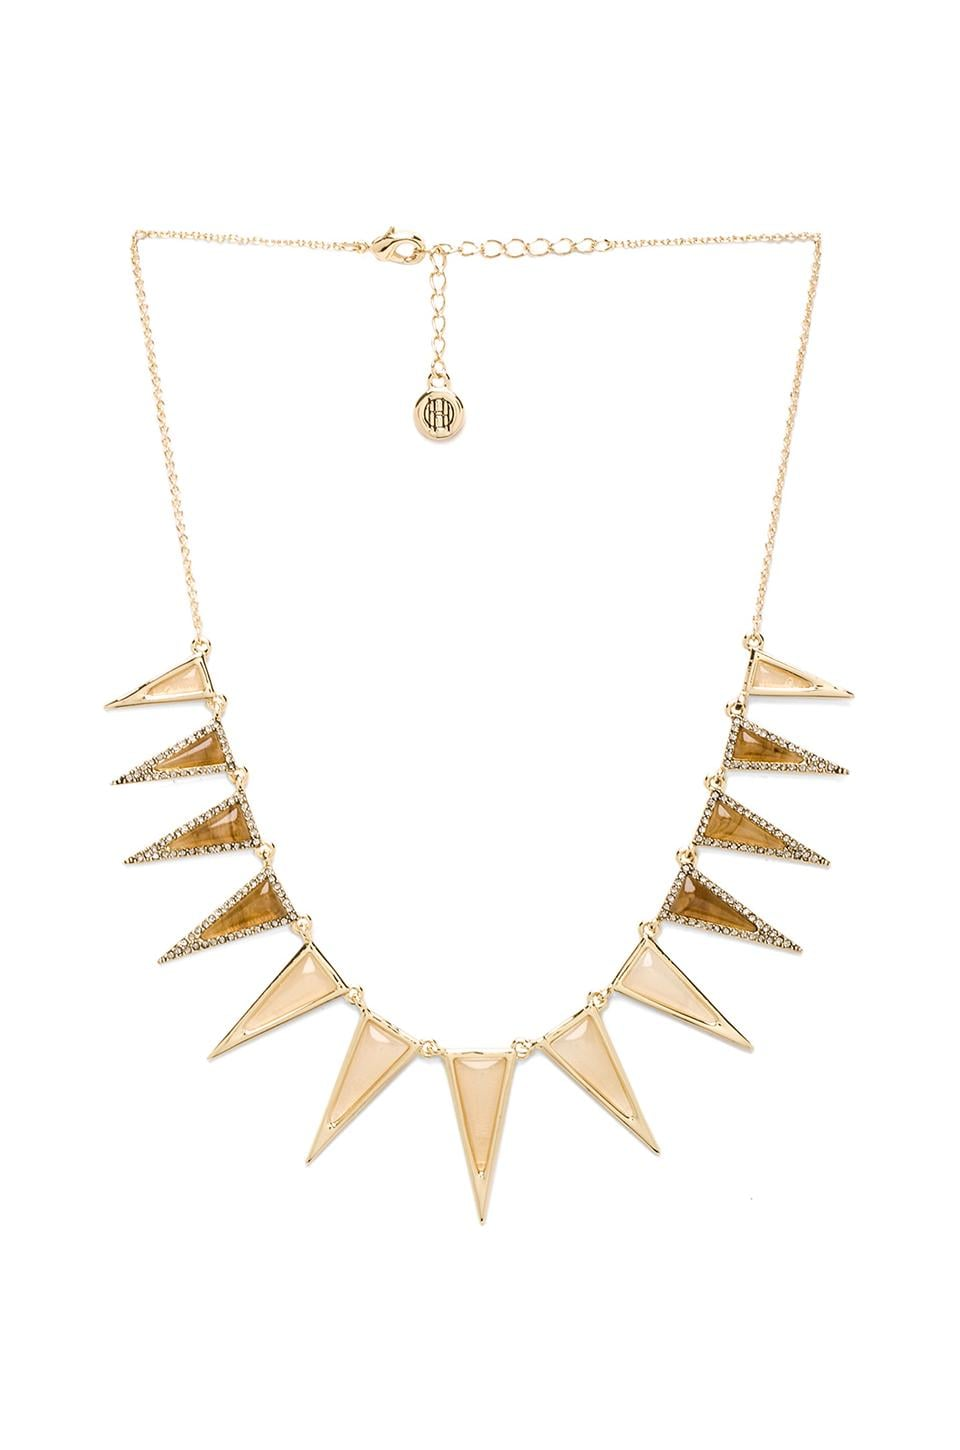 House of Harlow Echelon Collar Necklace in Gold